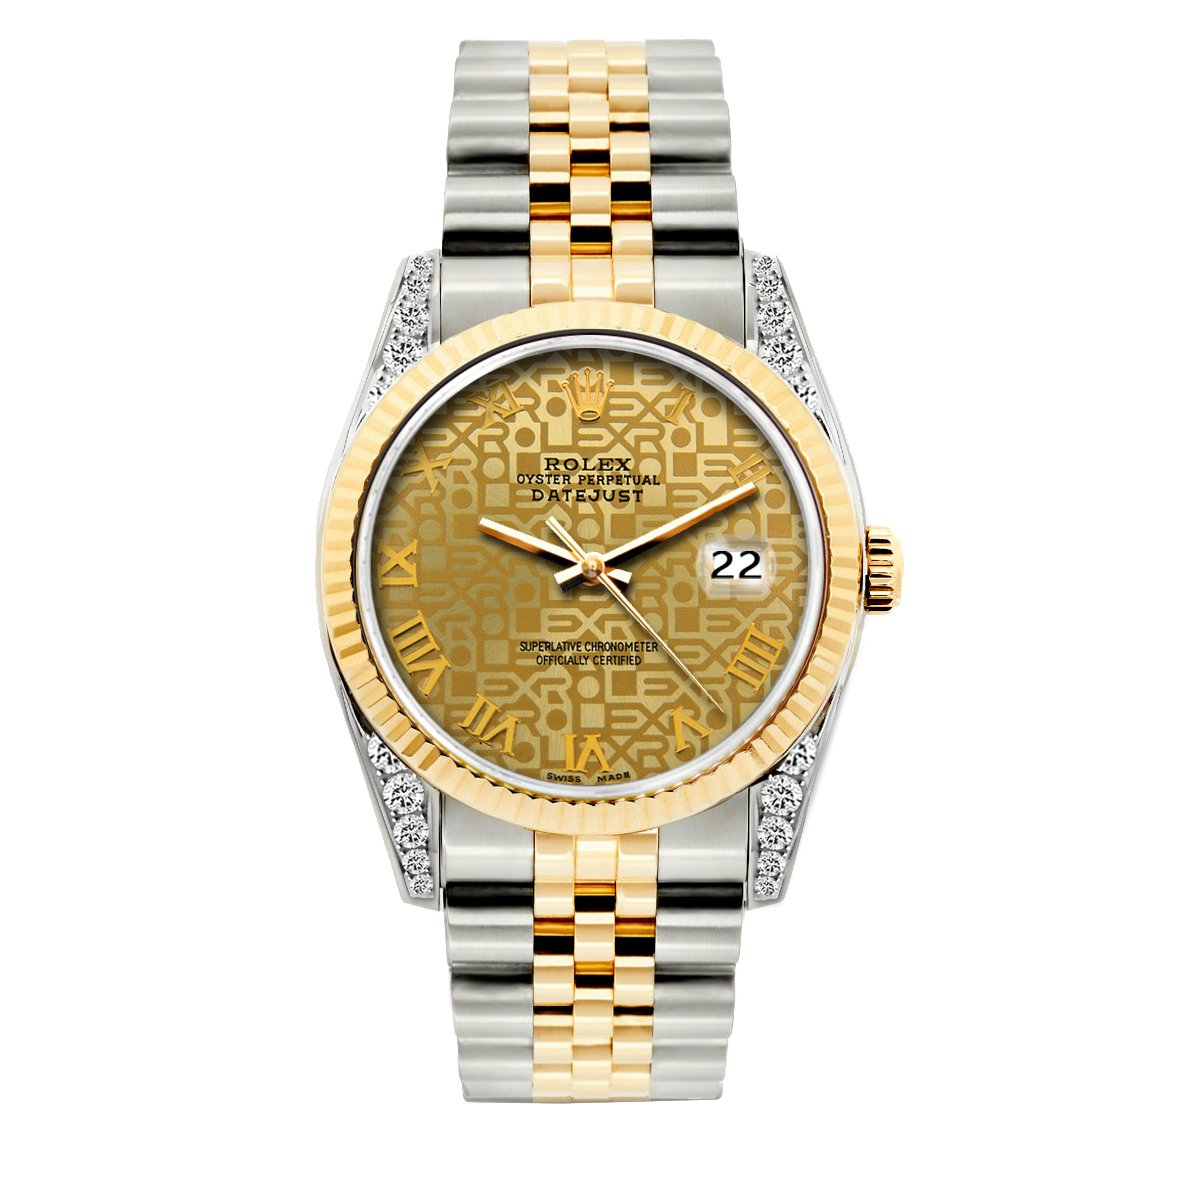 Rolex Datejust Diamond Watch, 36mm, Yellow Gold and Stainless Steel Bracelet Yellow Gold Dial w/ Diamond Lugs